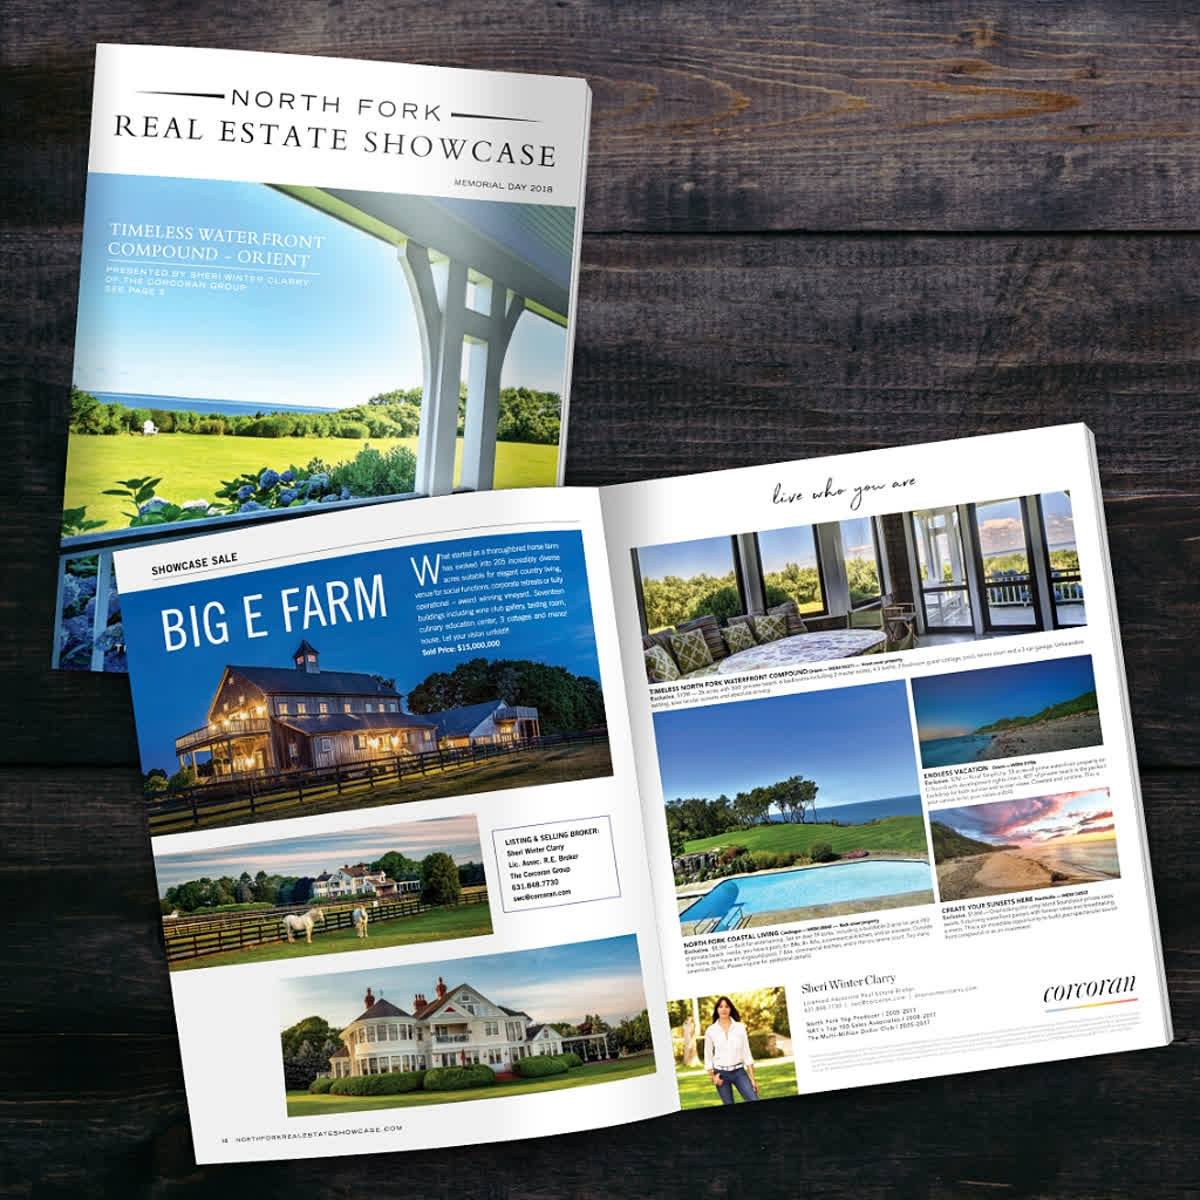 The latest issue of the North Fork Real Estate Showcase